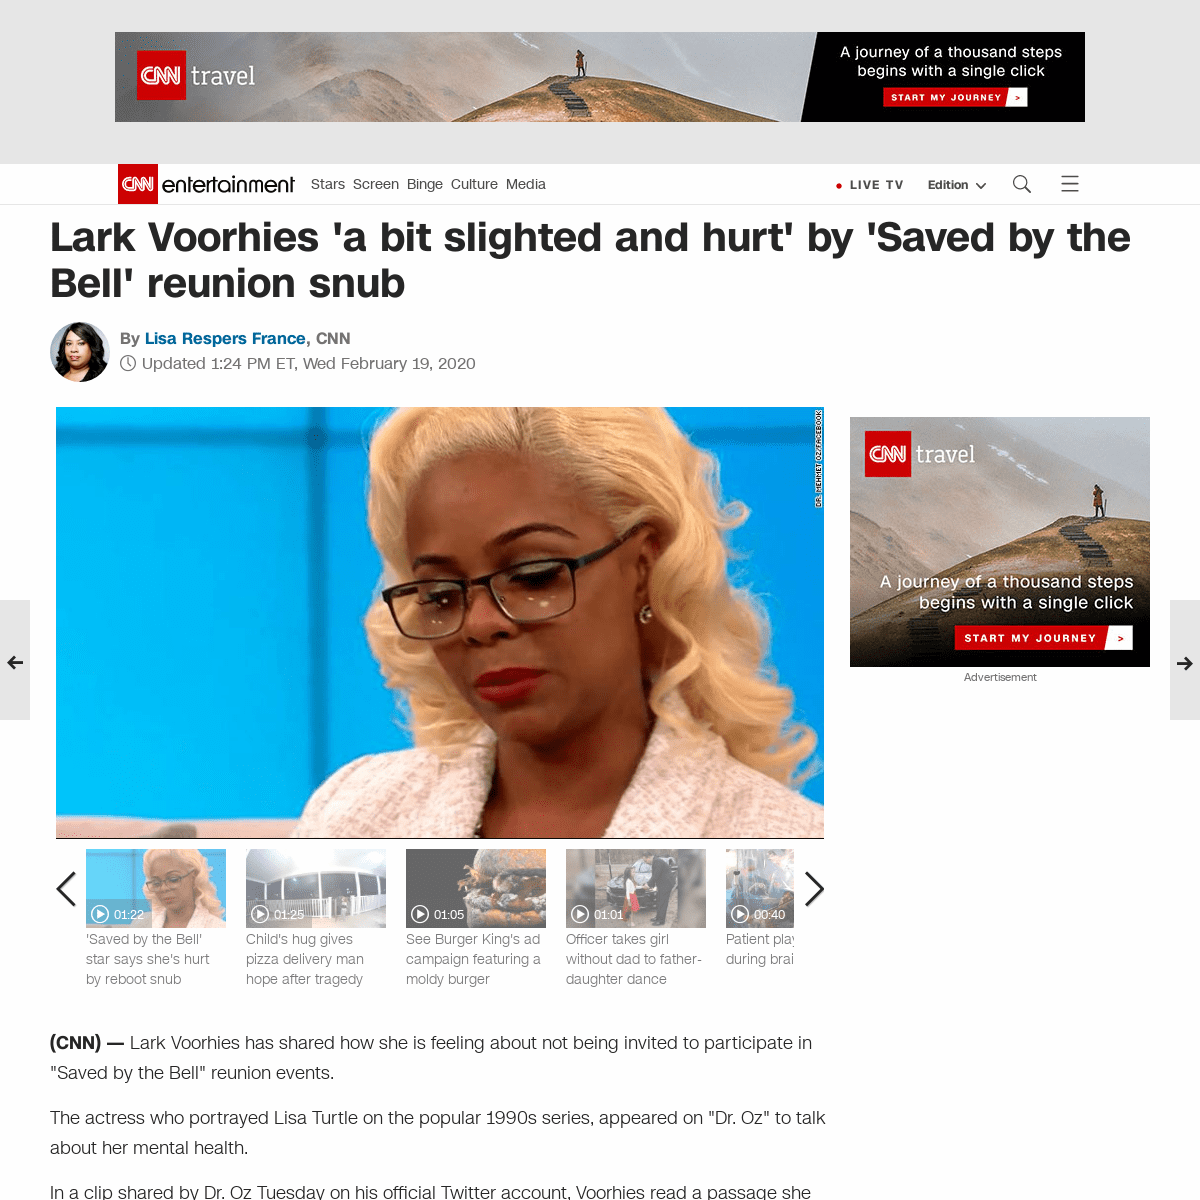 ArchiveBay.com - www.cnn.com/2020/02/19/entertainment/lark-voorhies-hurt-trnd/index.html - Lark Voorhies 'a bit slighted and hurt' by 'Saved by the Bell' reunion snub - CNN